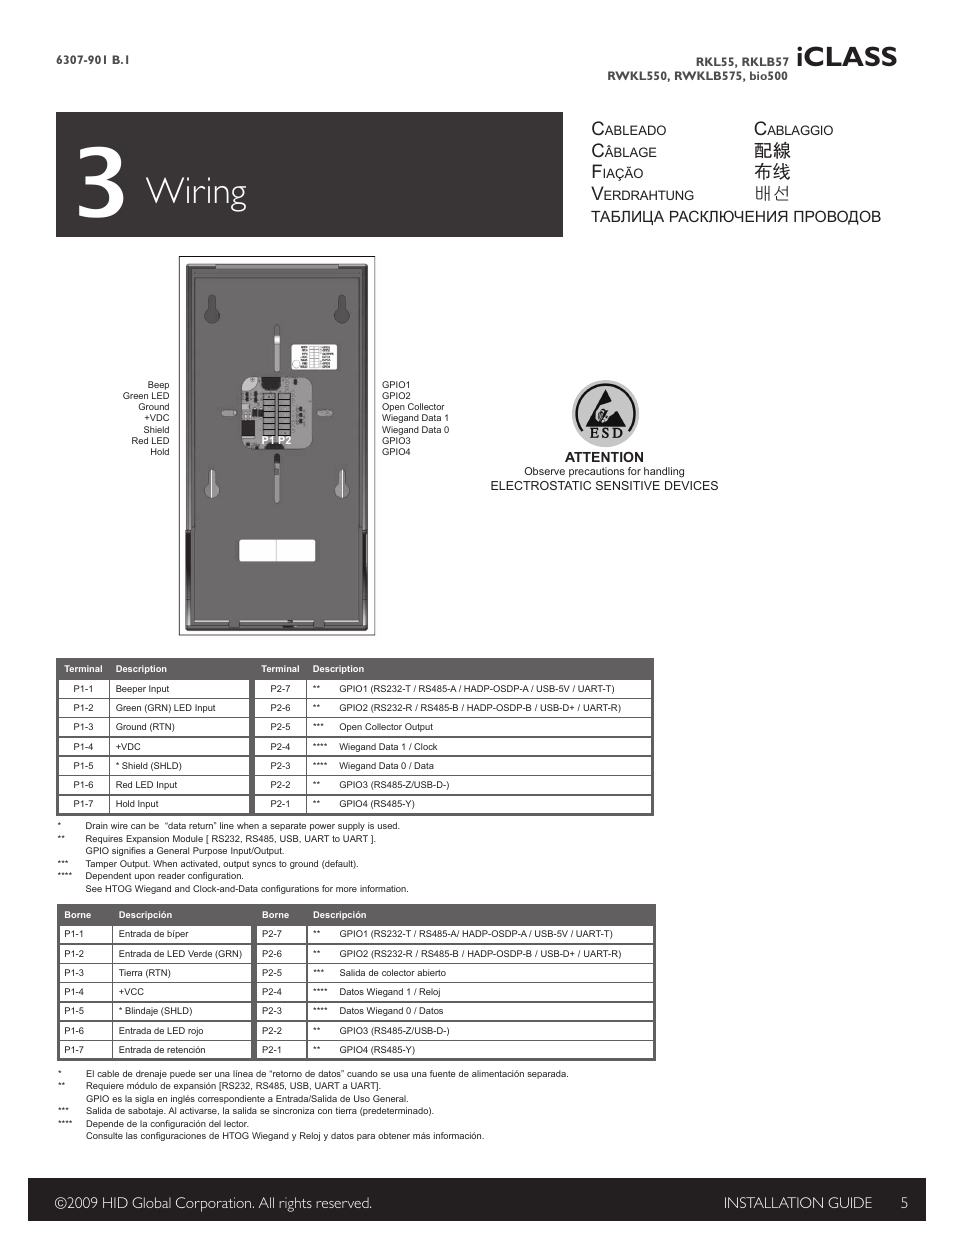 hid-biocl-installation-guide-page5  V Power Supply Wiring Diagram on for iphone, fire stick, trane xl15i, computer atx, 4 pin atx, station for,